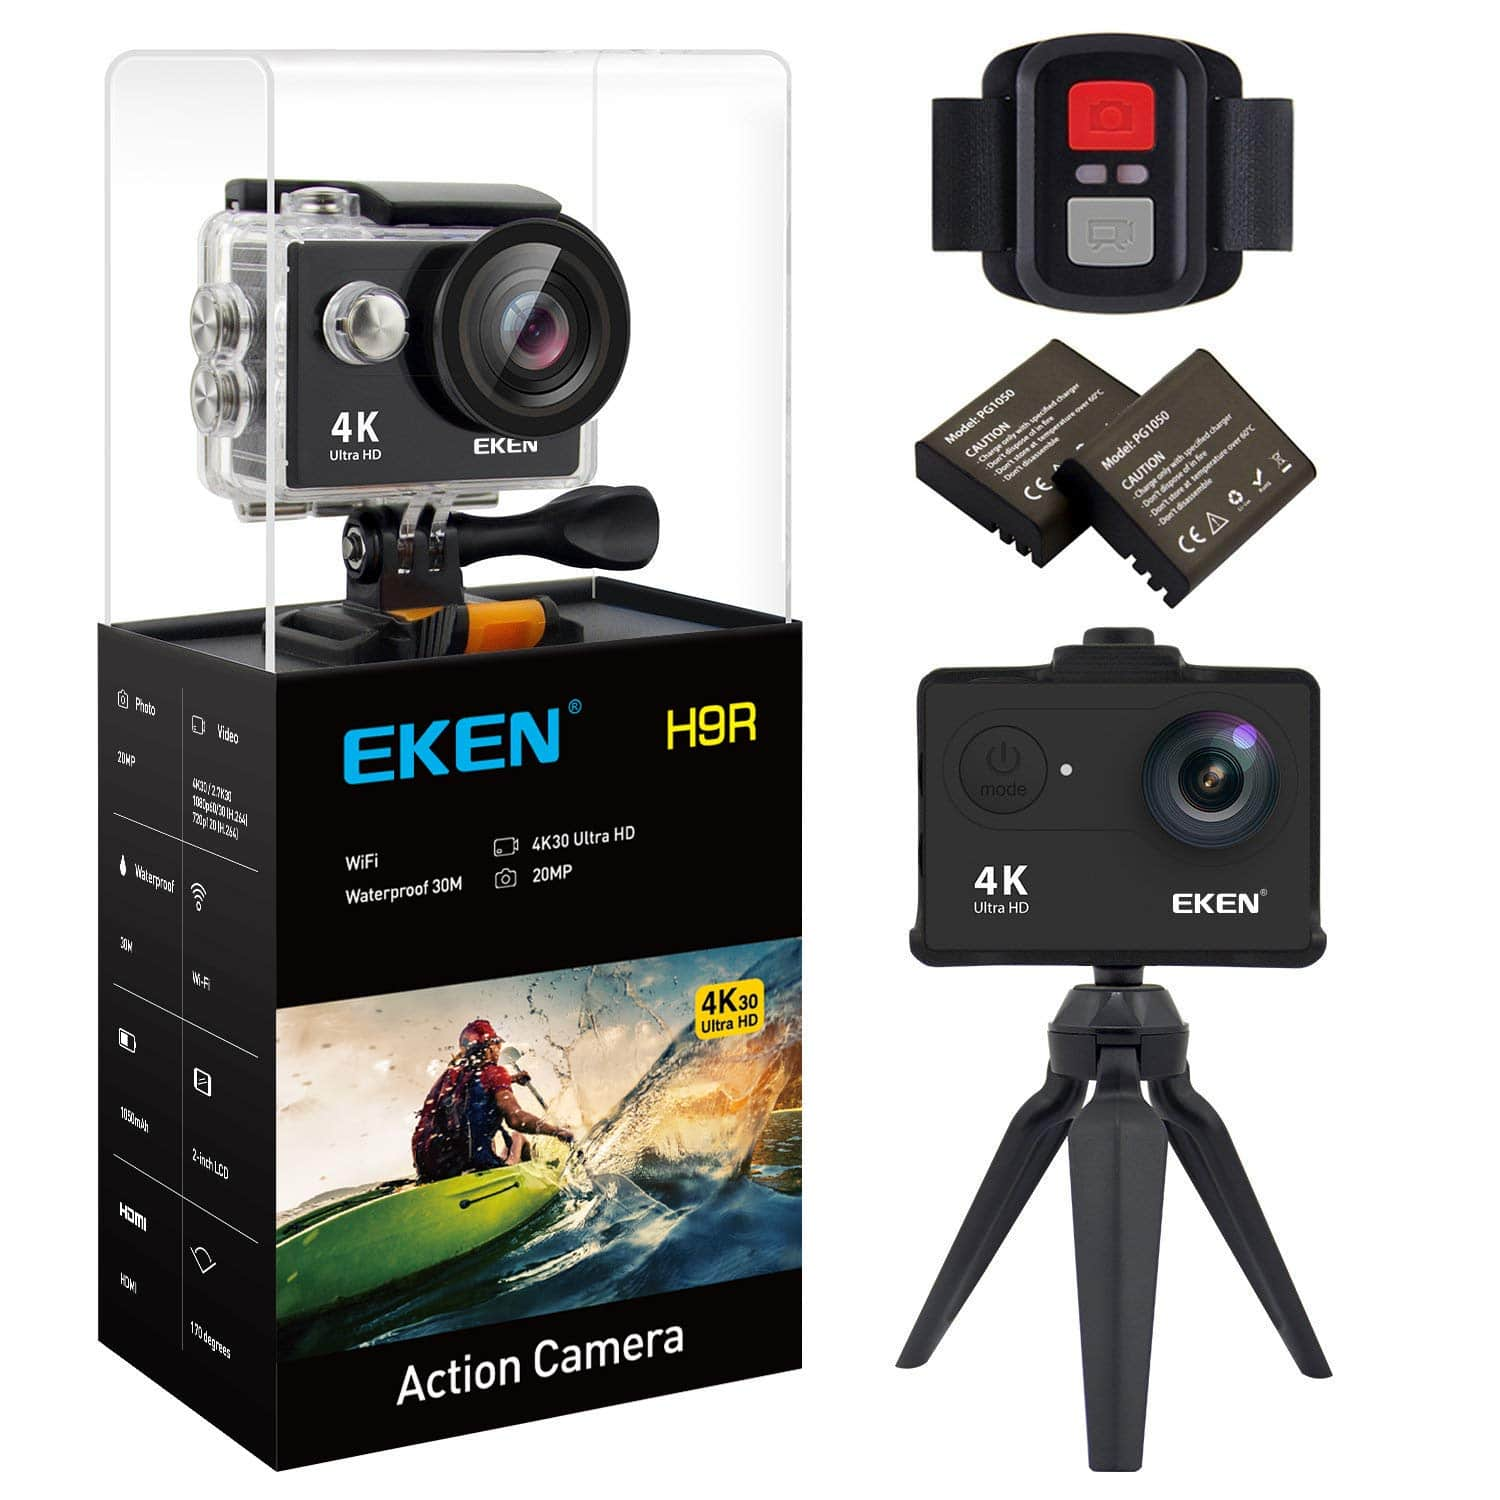 EKEN H9R review action camera budget